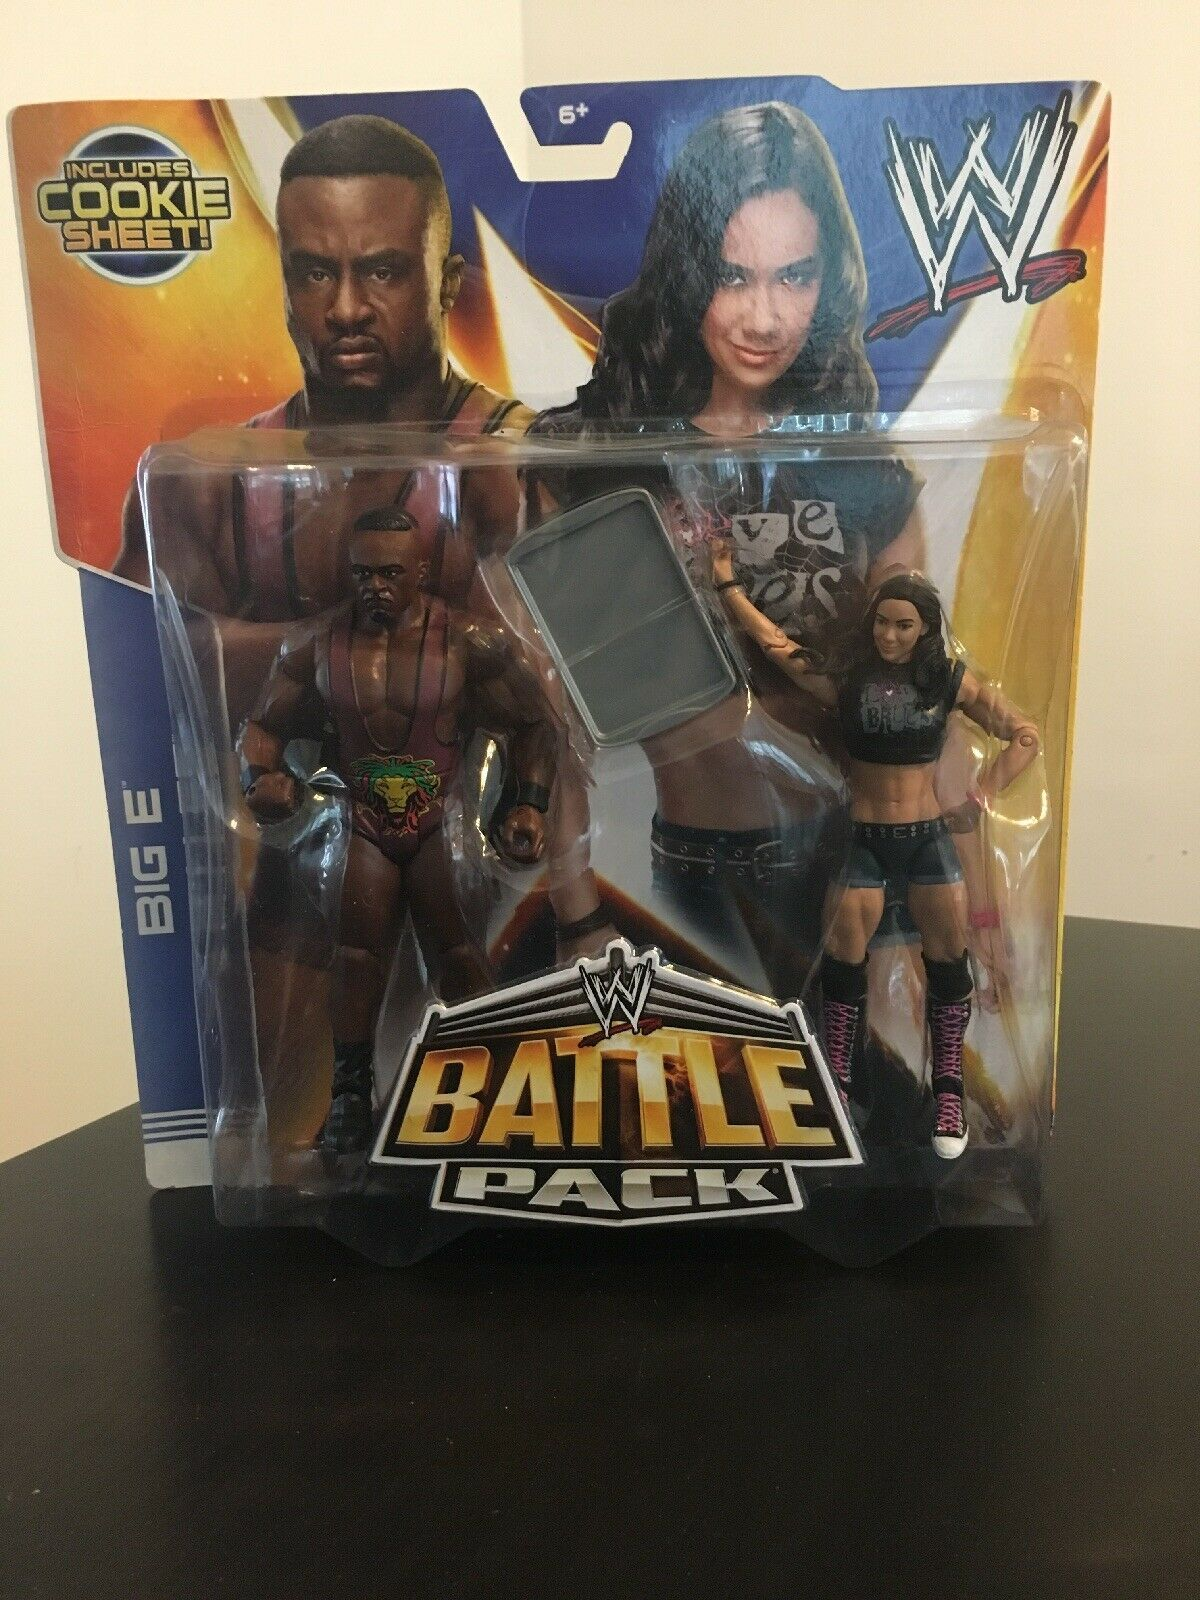 WWE Battle Pack Series 28 Big E  AJ Lee Action Figures Cookie Sheet New READ